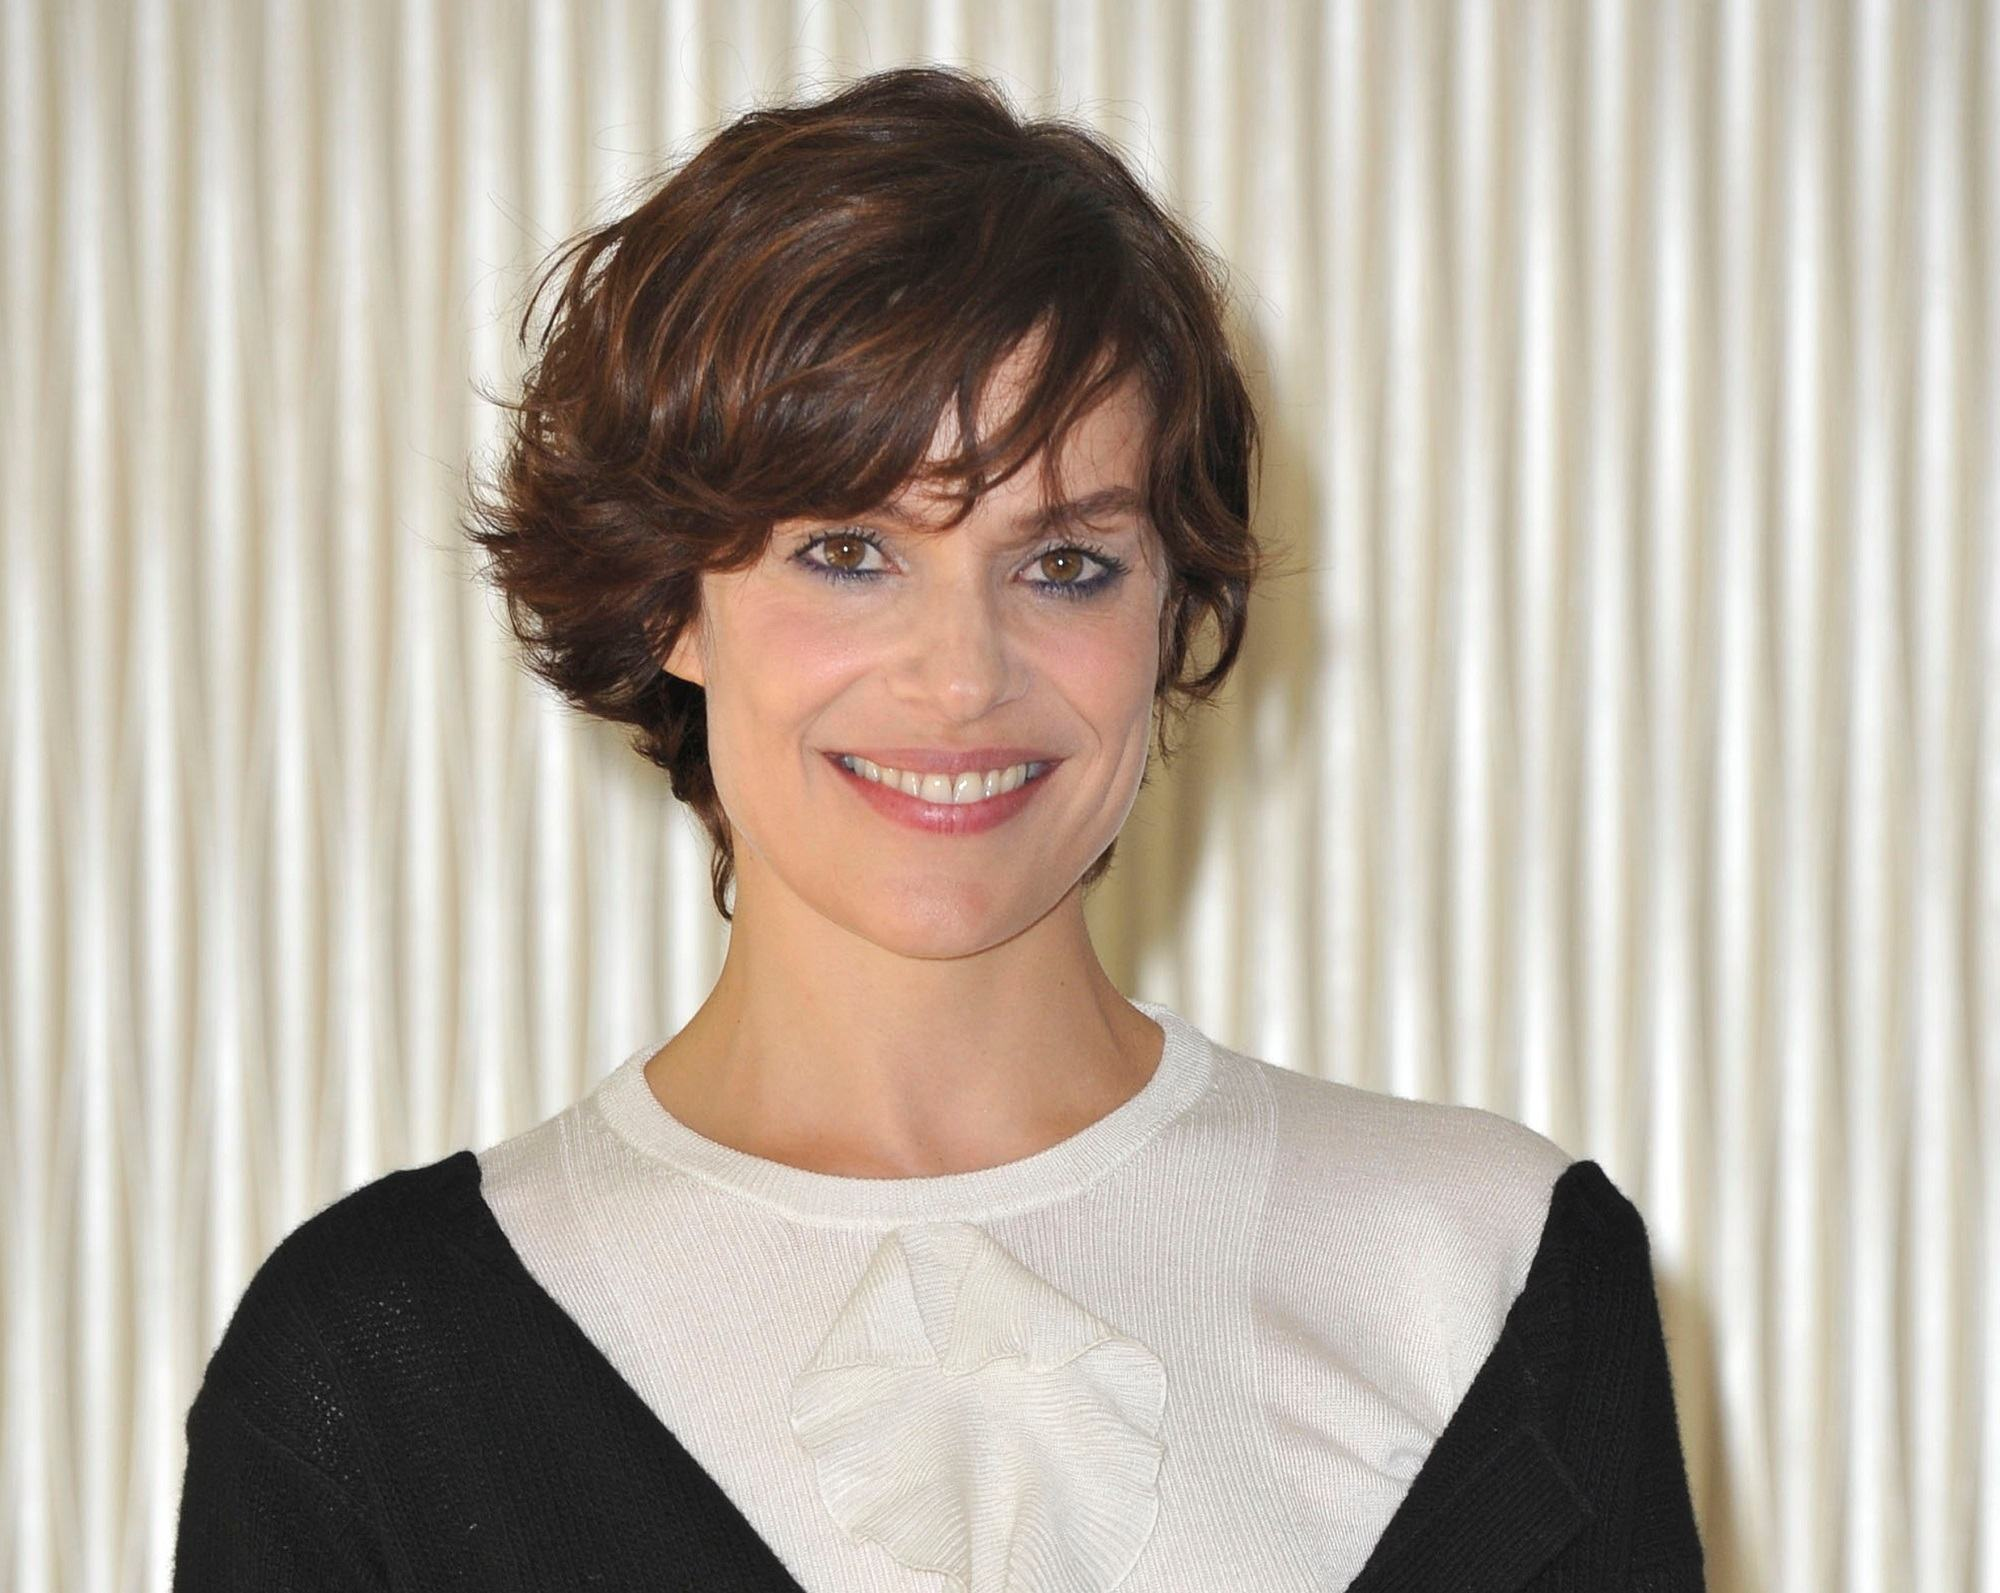 Celebrity short hair: Italian actress Micaela Ramazzotti woman with short brown hair with short waves standing against a cream-colored background